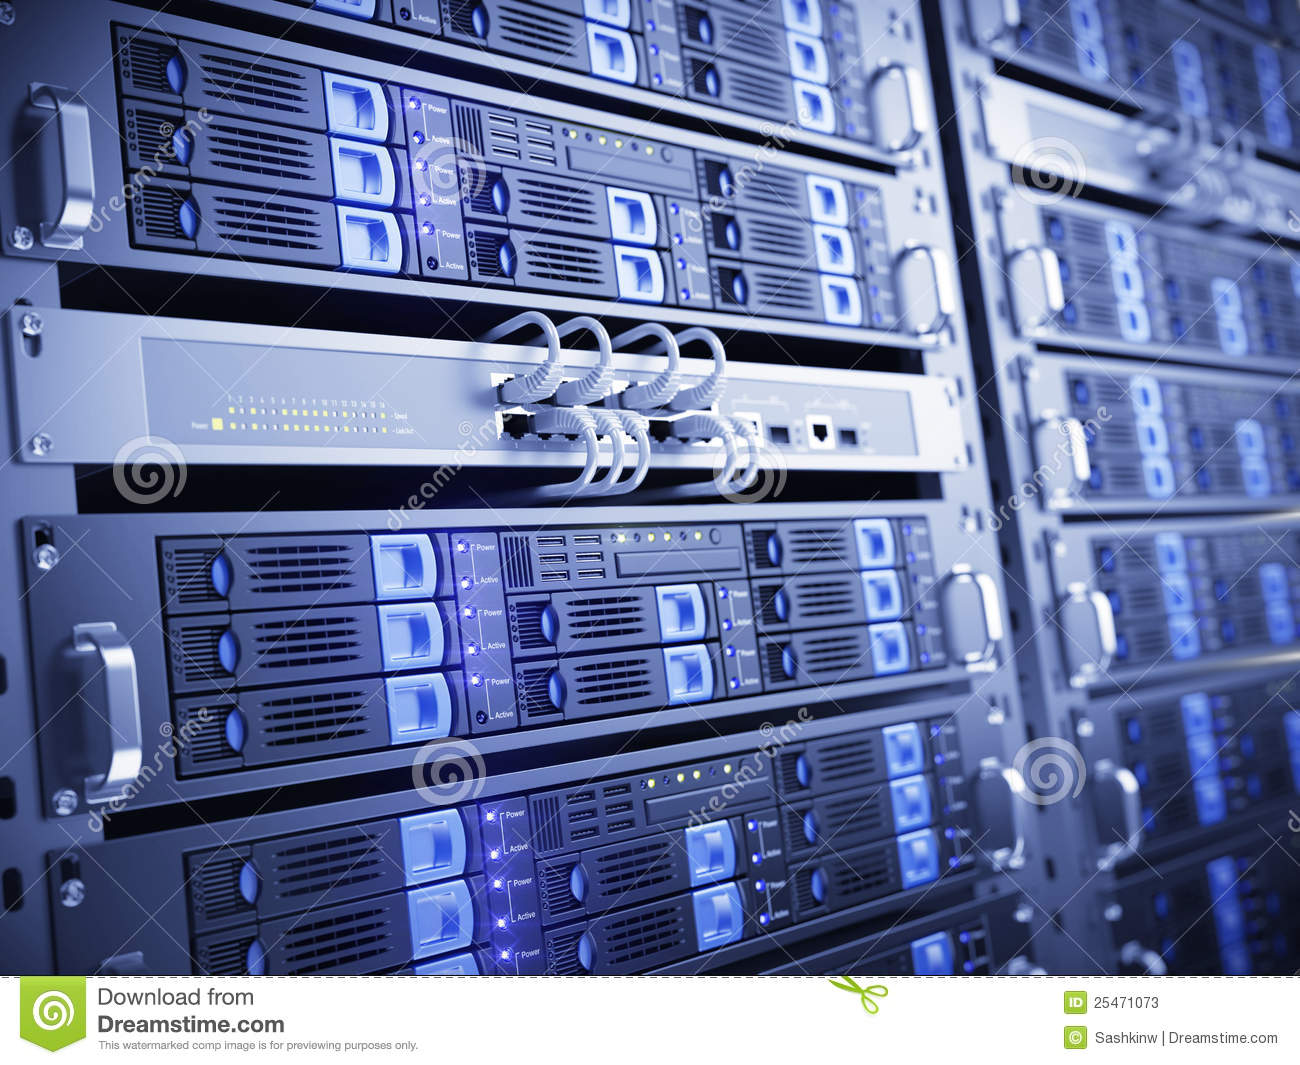 Computer Servers Stock Photos - Image: 25471073